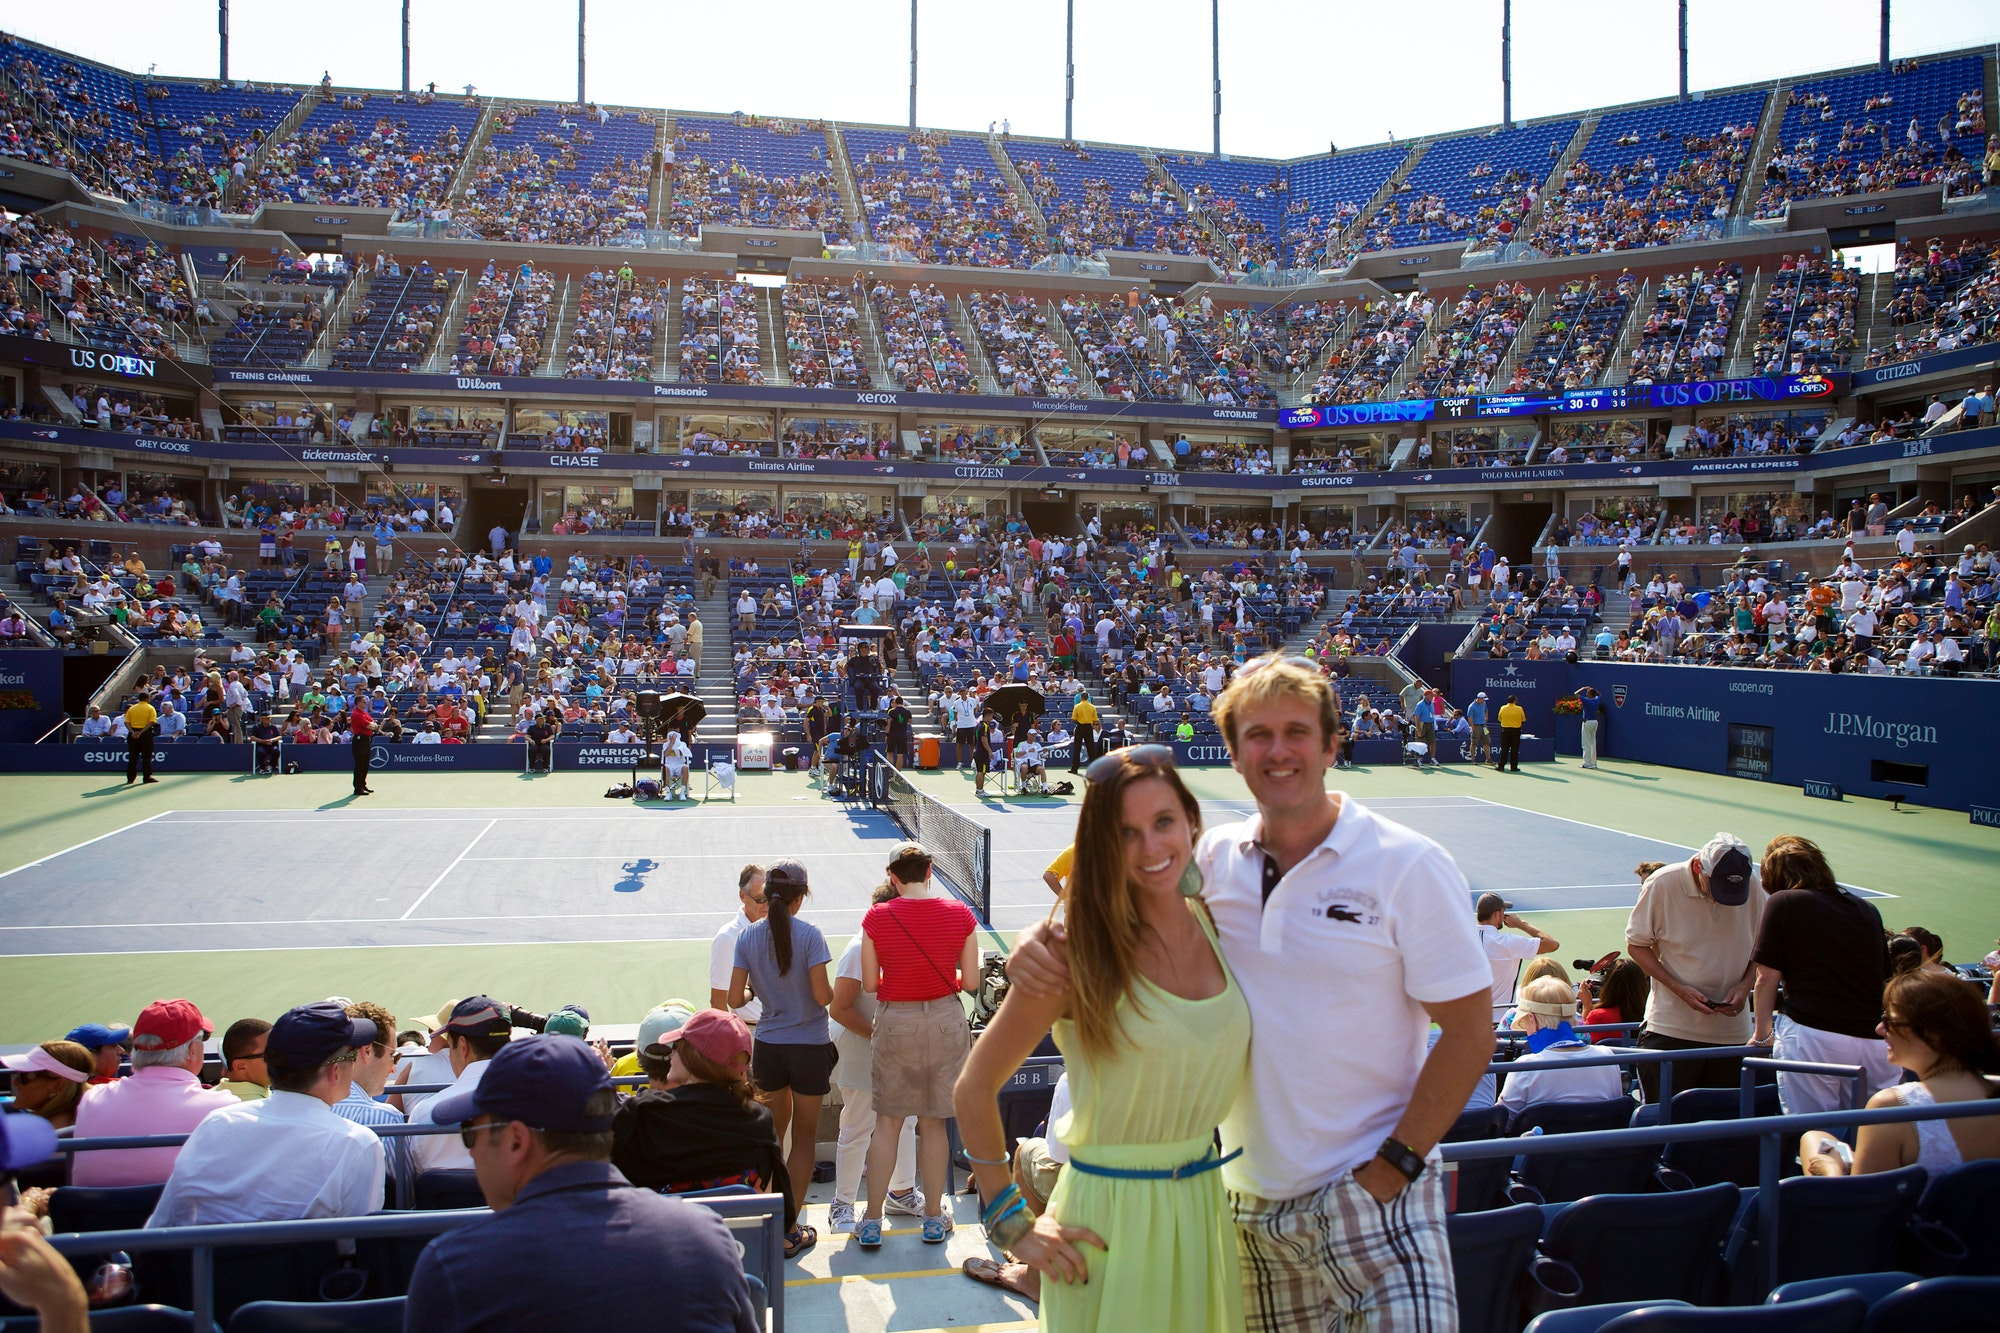 Tricia J. teaches tennis lessons in Fort Lauderdale, FL